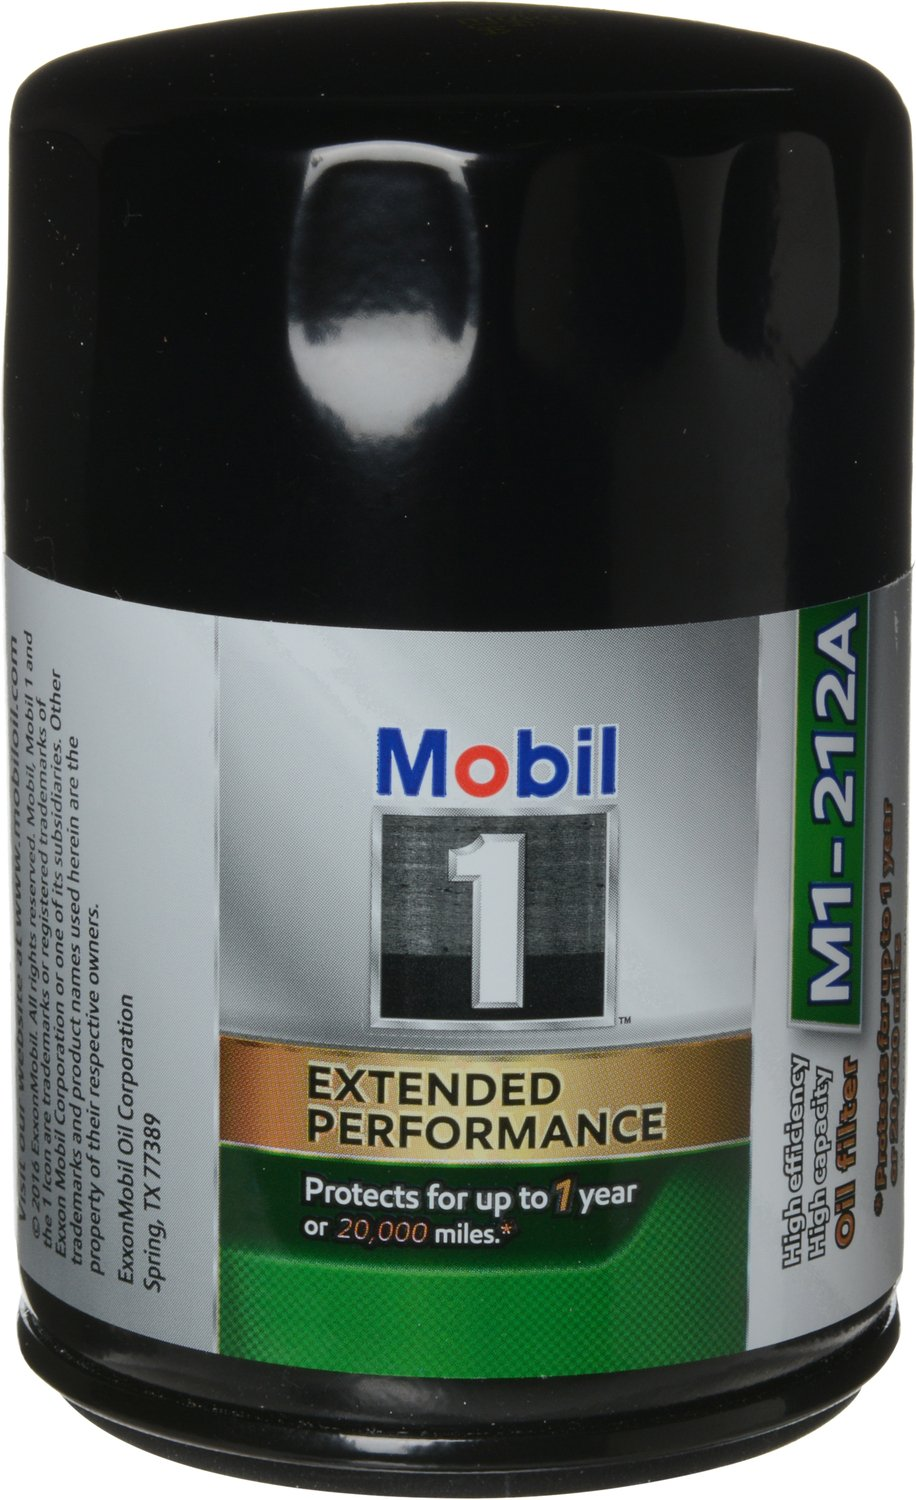 Mobil 1 M1-212A Extended Performance Oil Filter, 2 Pack